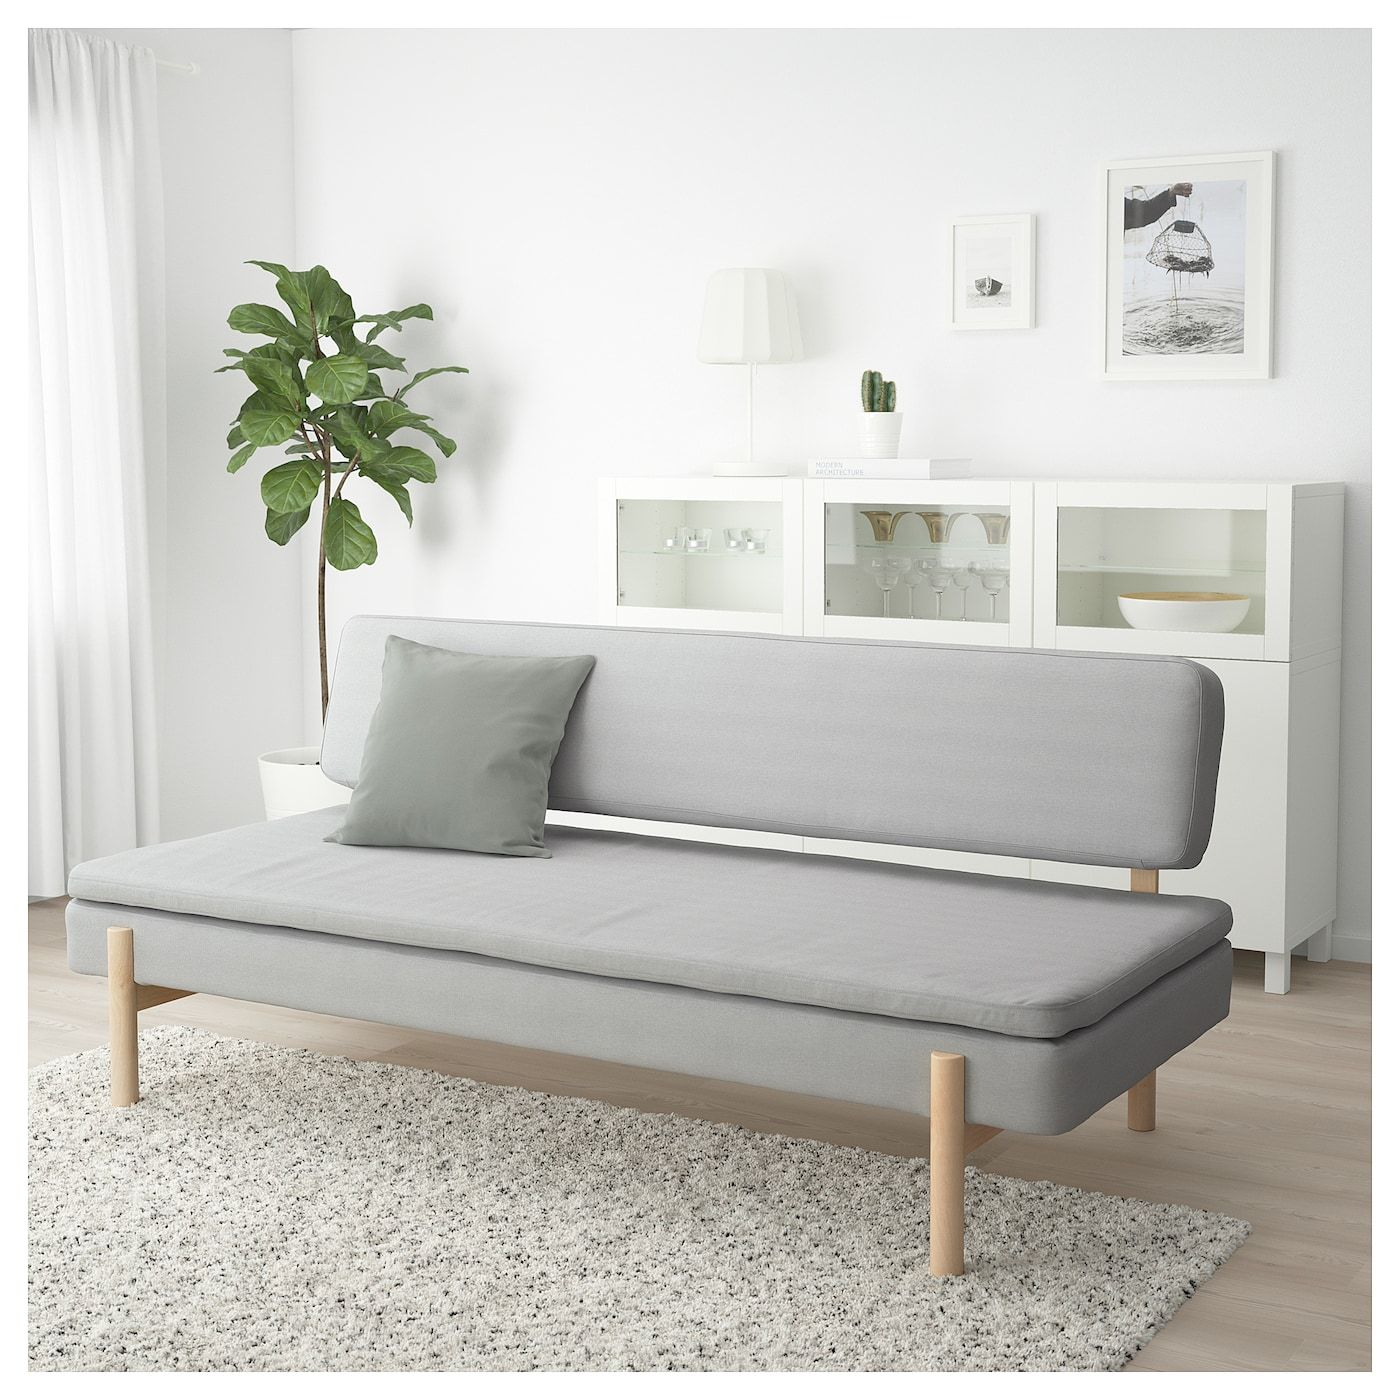 Ypperlig 3 Seat Sleeper Sofa Orrsta Light Gray Ikea Ikea Sofa Bed 3 Seat Sofa Bed Sofa